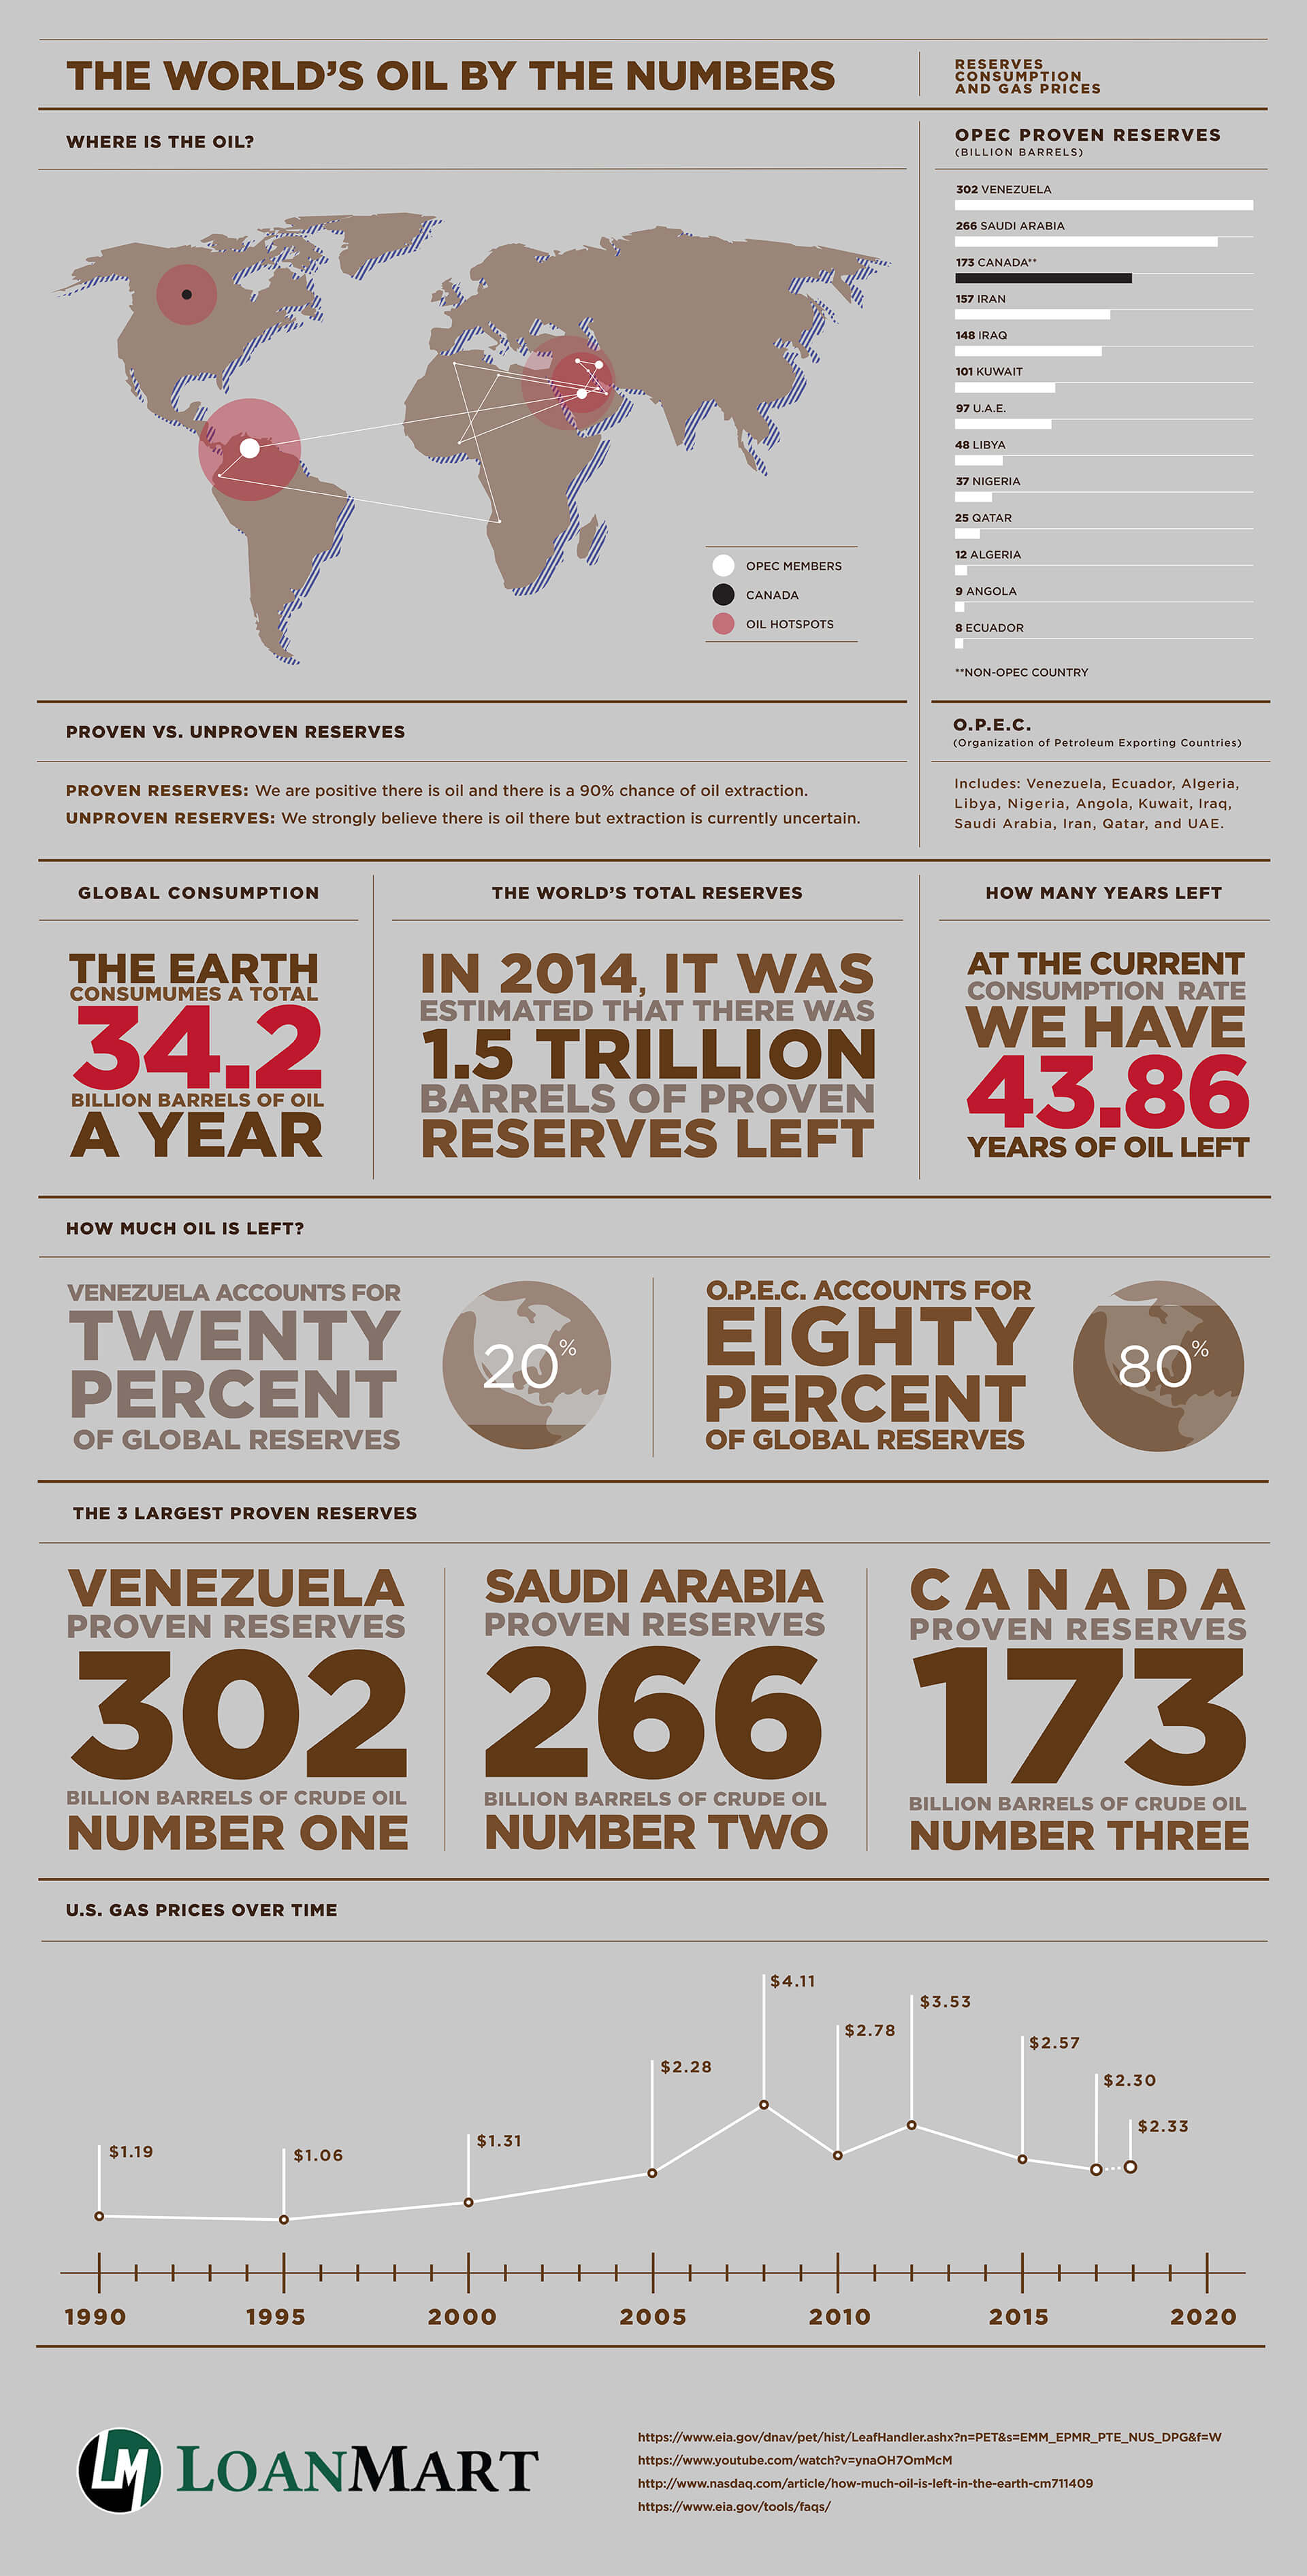 World's Oil by the Numbers